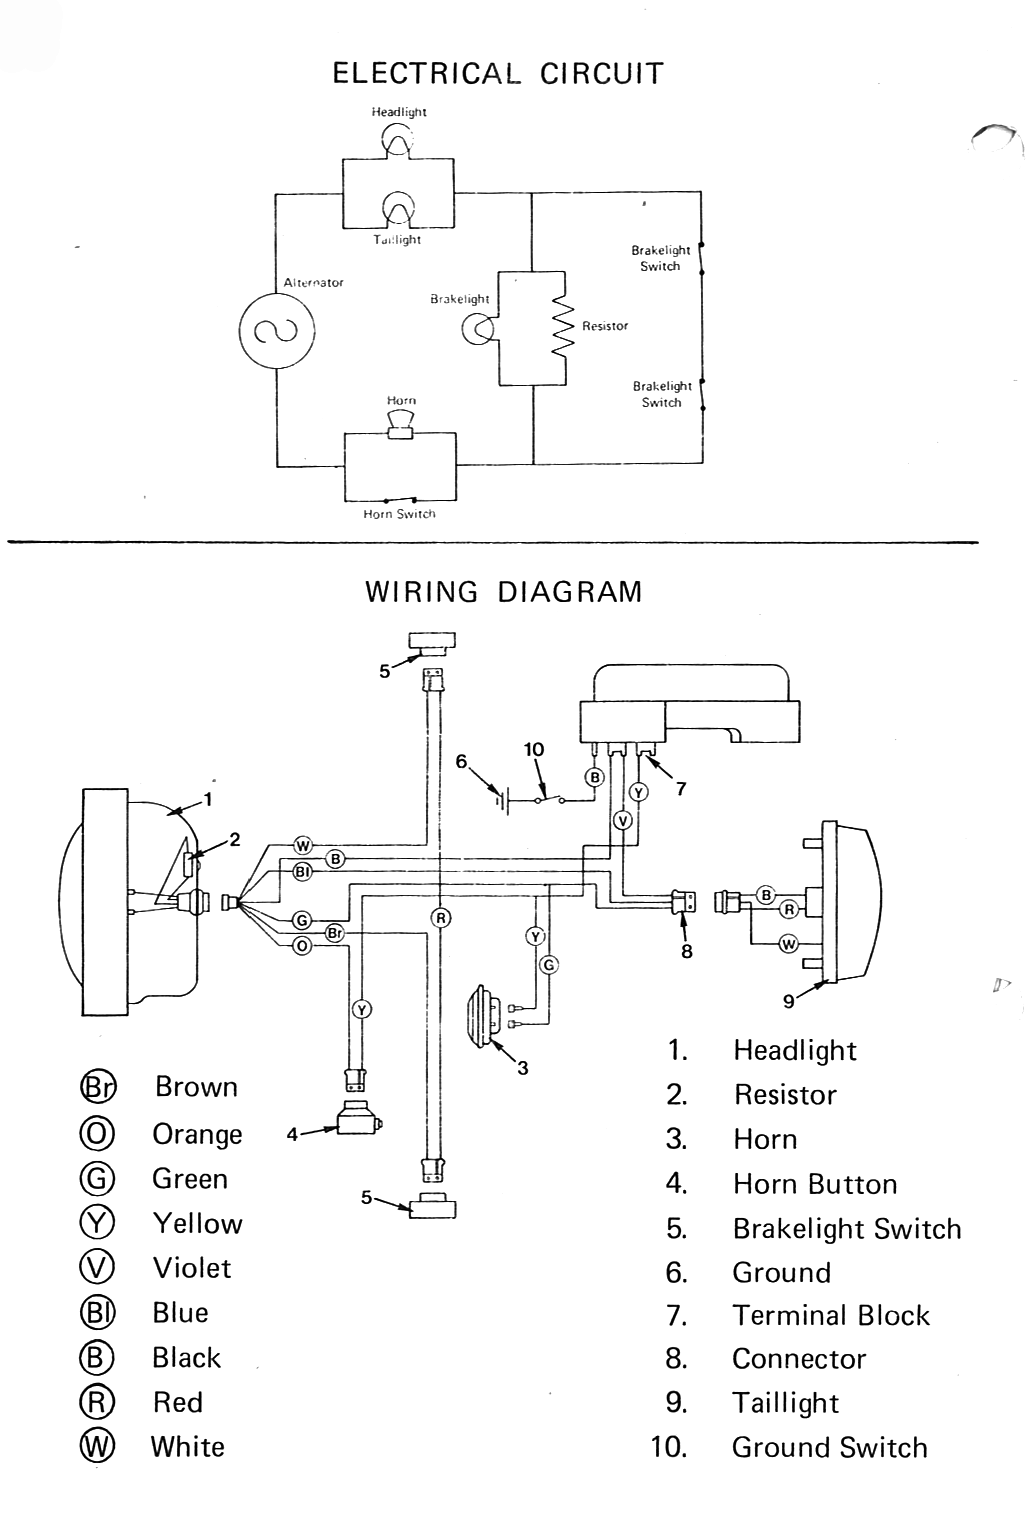 hight resolution of 1977 tomos a3sp wiring diagram puch wiring diagram 1977 tomos a3sp wiring diagram